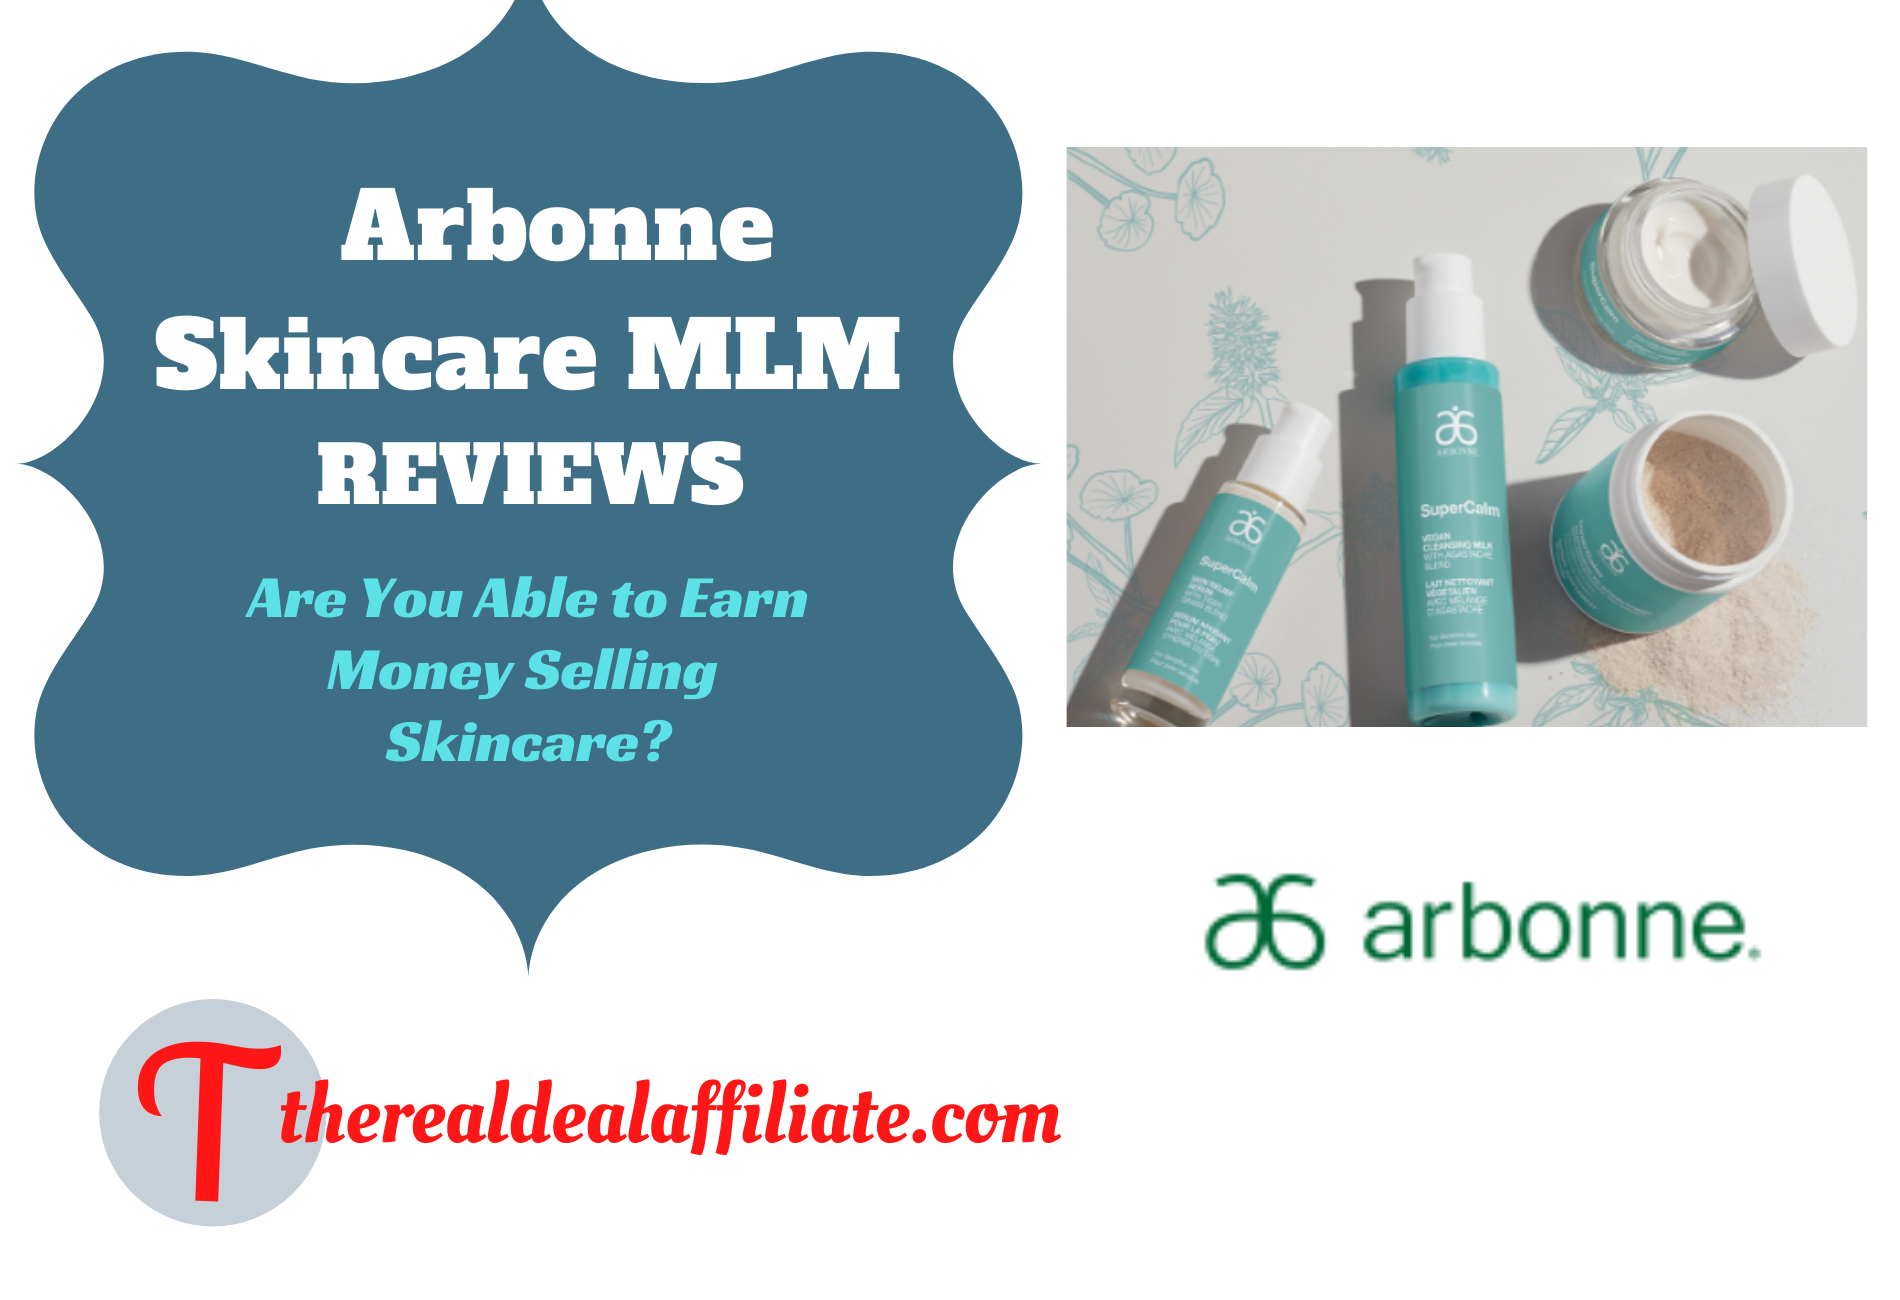 Arbonne Featured Image